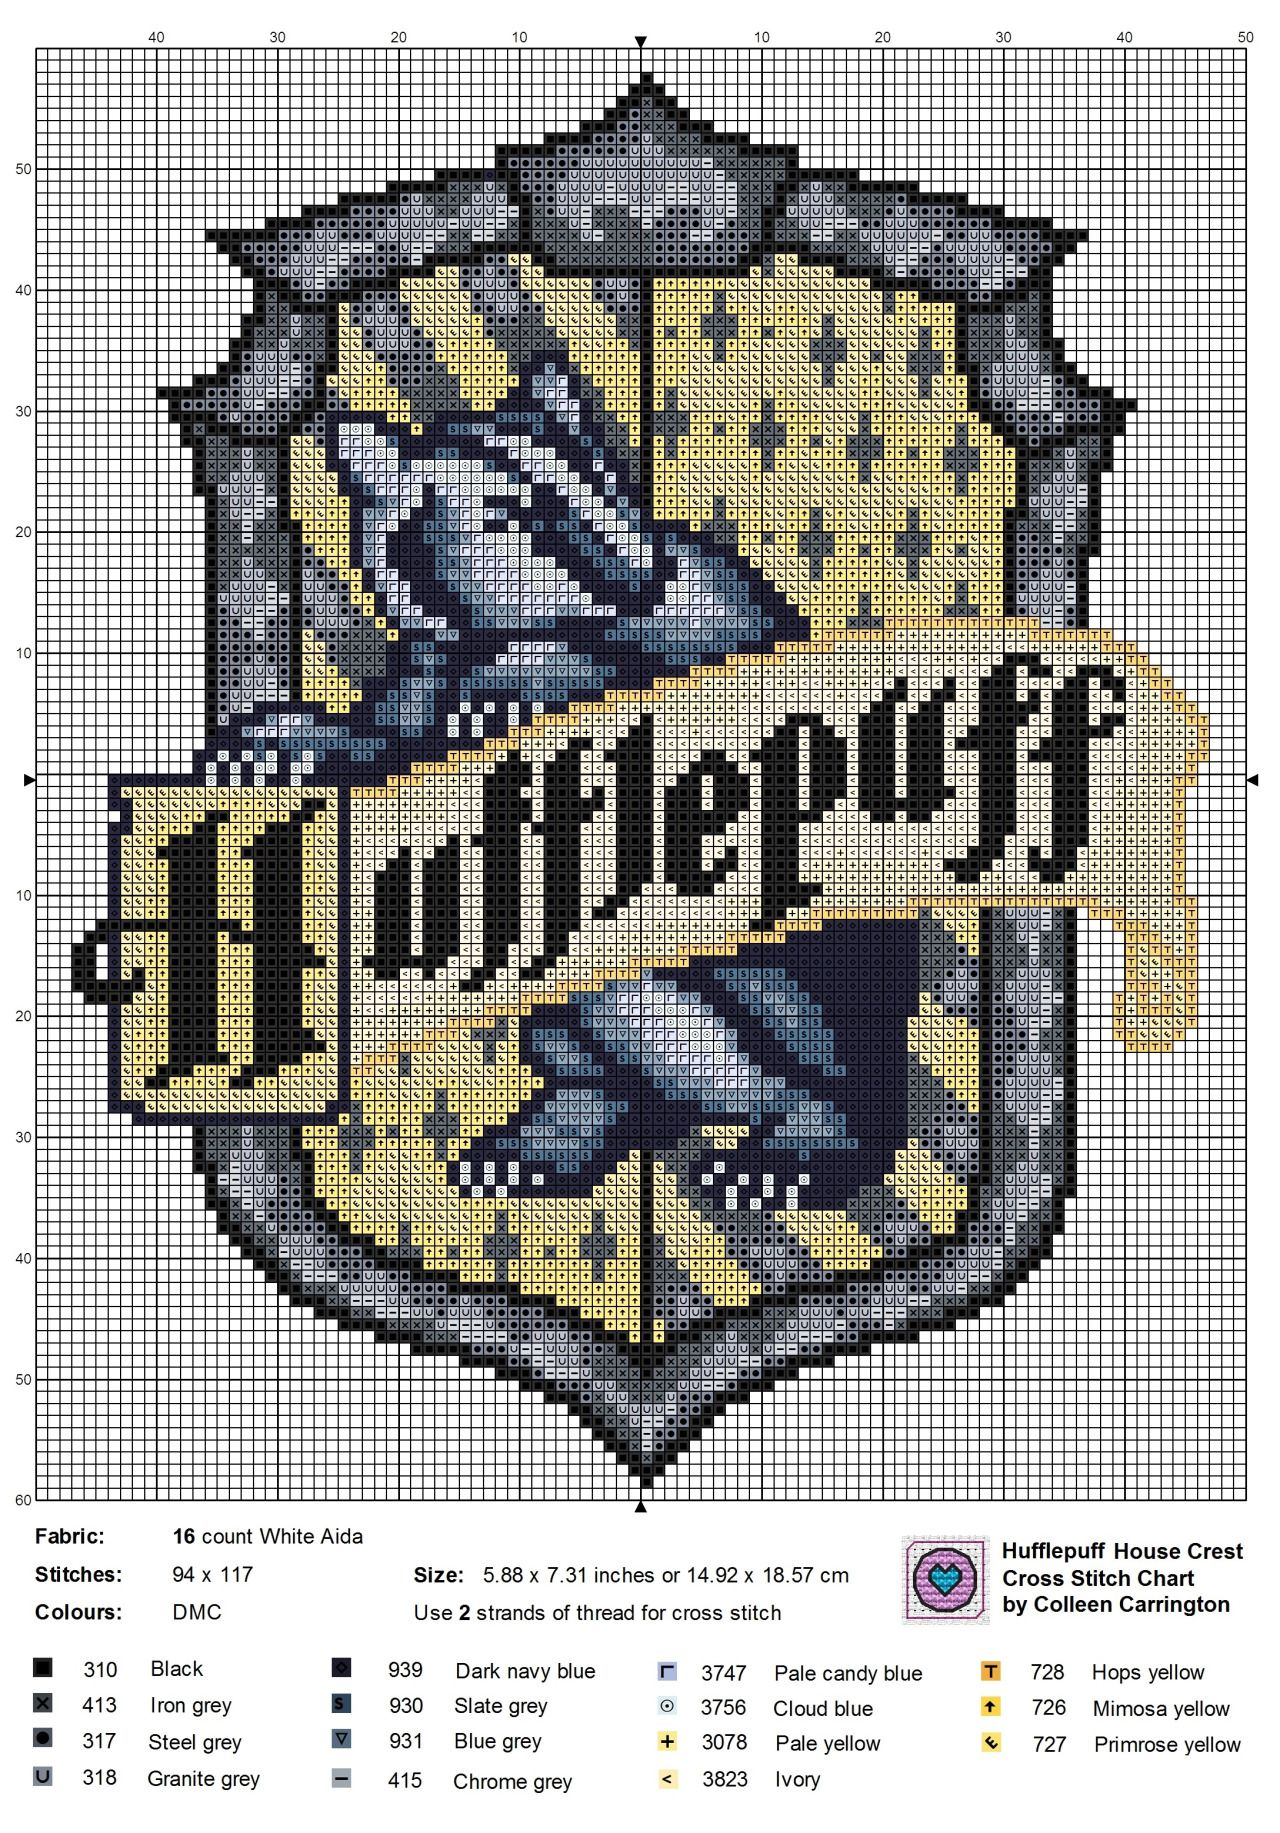 The World In Stitches Harry Potter Cross Stitch Pattern Cross Stitch Cross Stitching